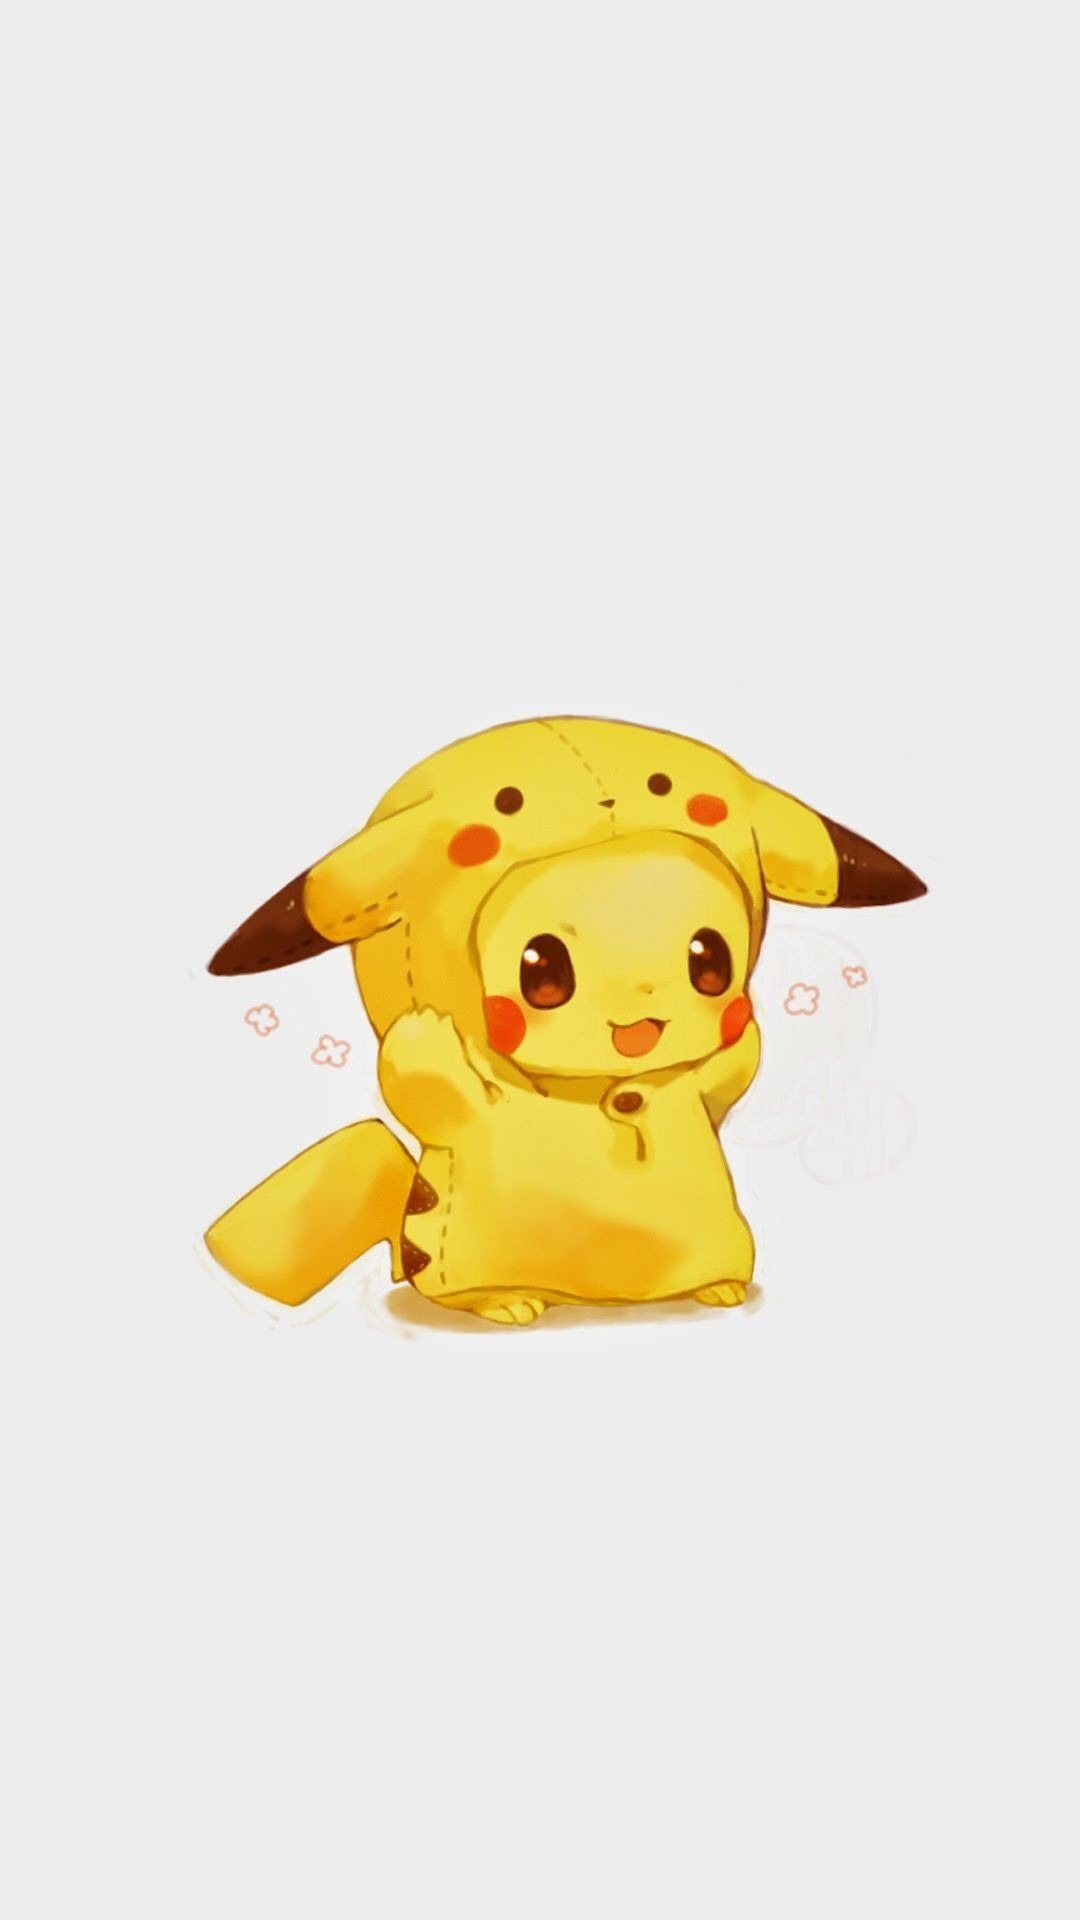 "1080x1920  Pin by mobile9 on iPhone 8 & iPhone X Wallpapers, Cases & More  ...""> Download · 1920x1200 Cute Pikachu Wallpapers"